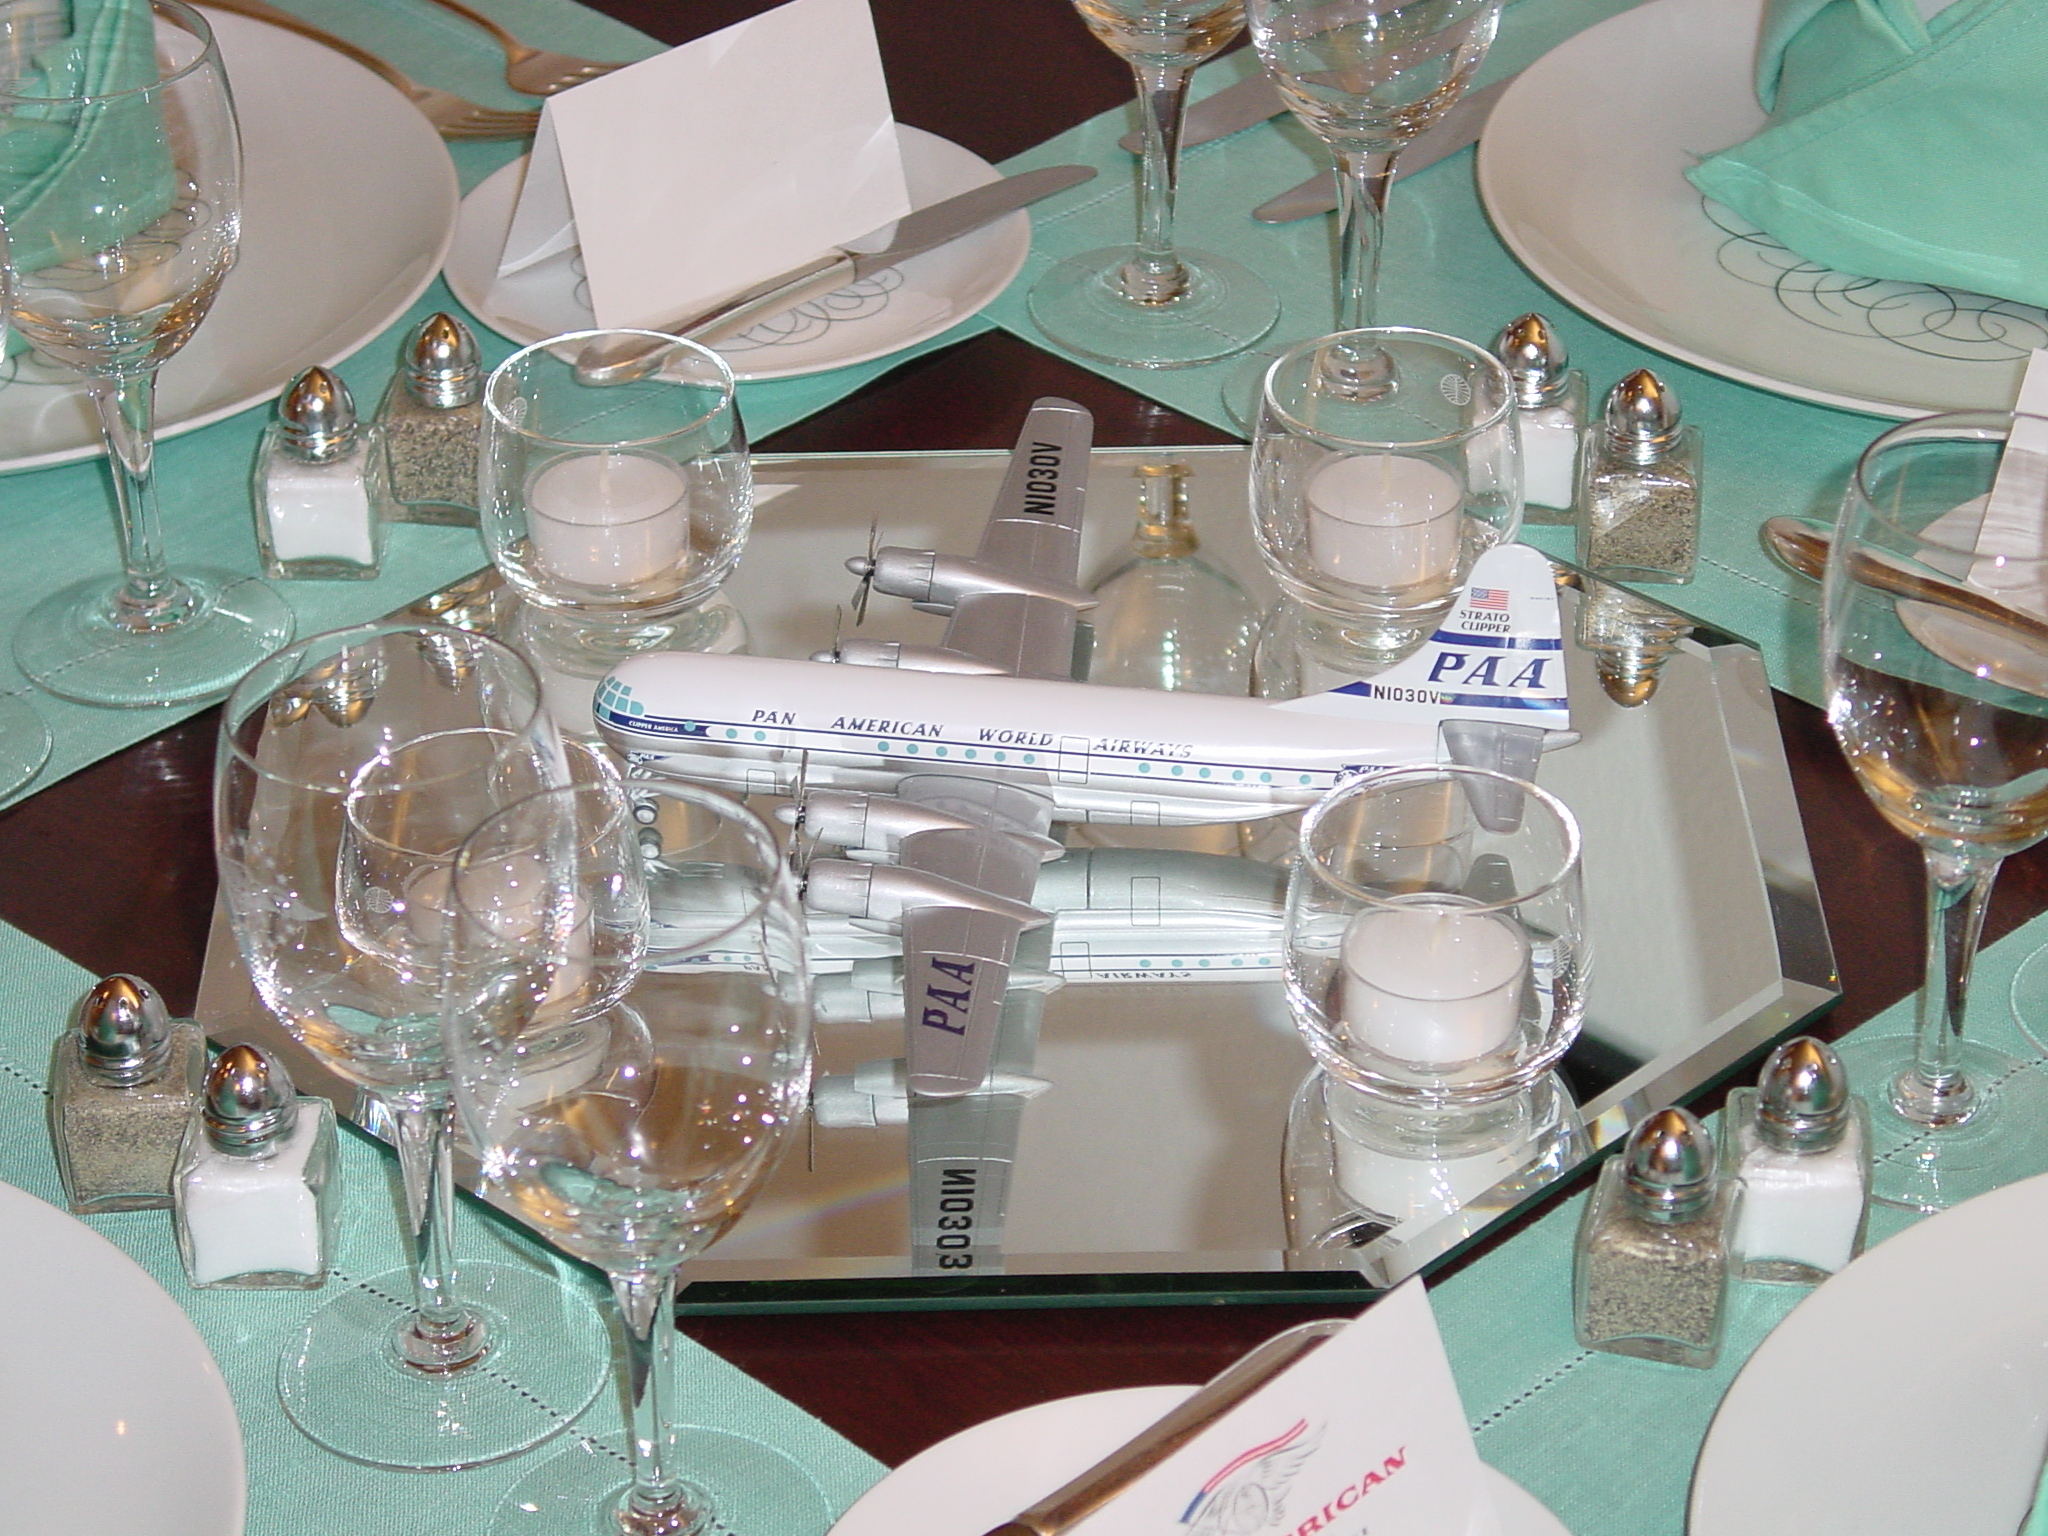 A model of a Boeing B377 'Stratocruiser' make a great center piece for a 1950s President Special table setting with Rosenthal 'Script' pattern plates.